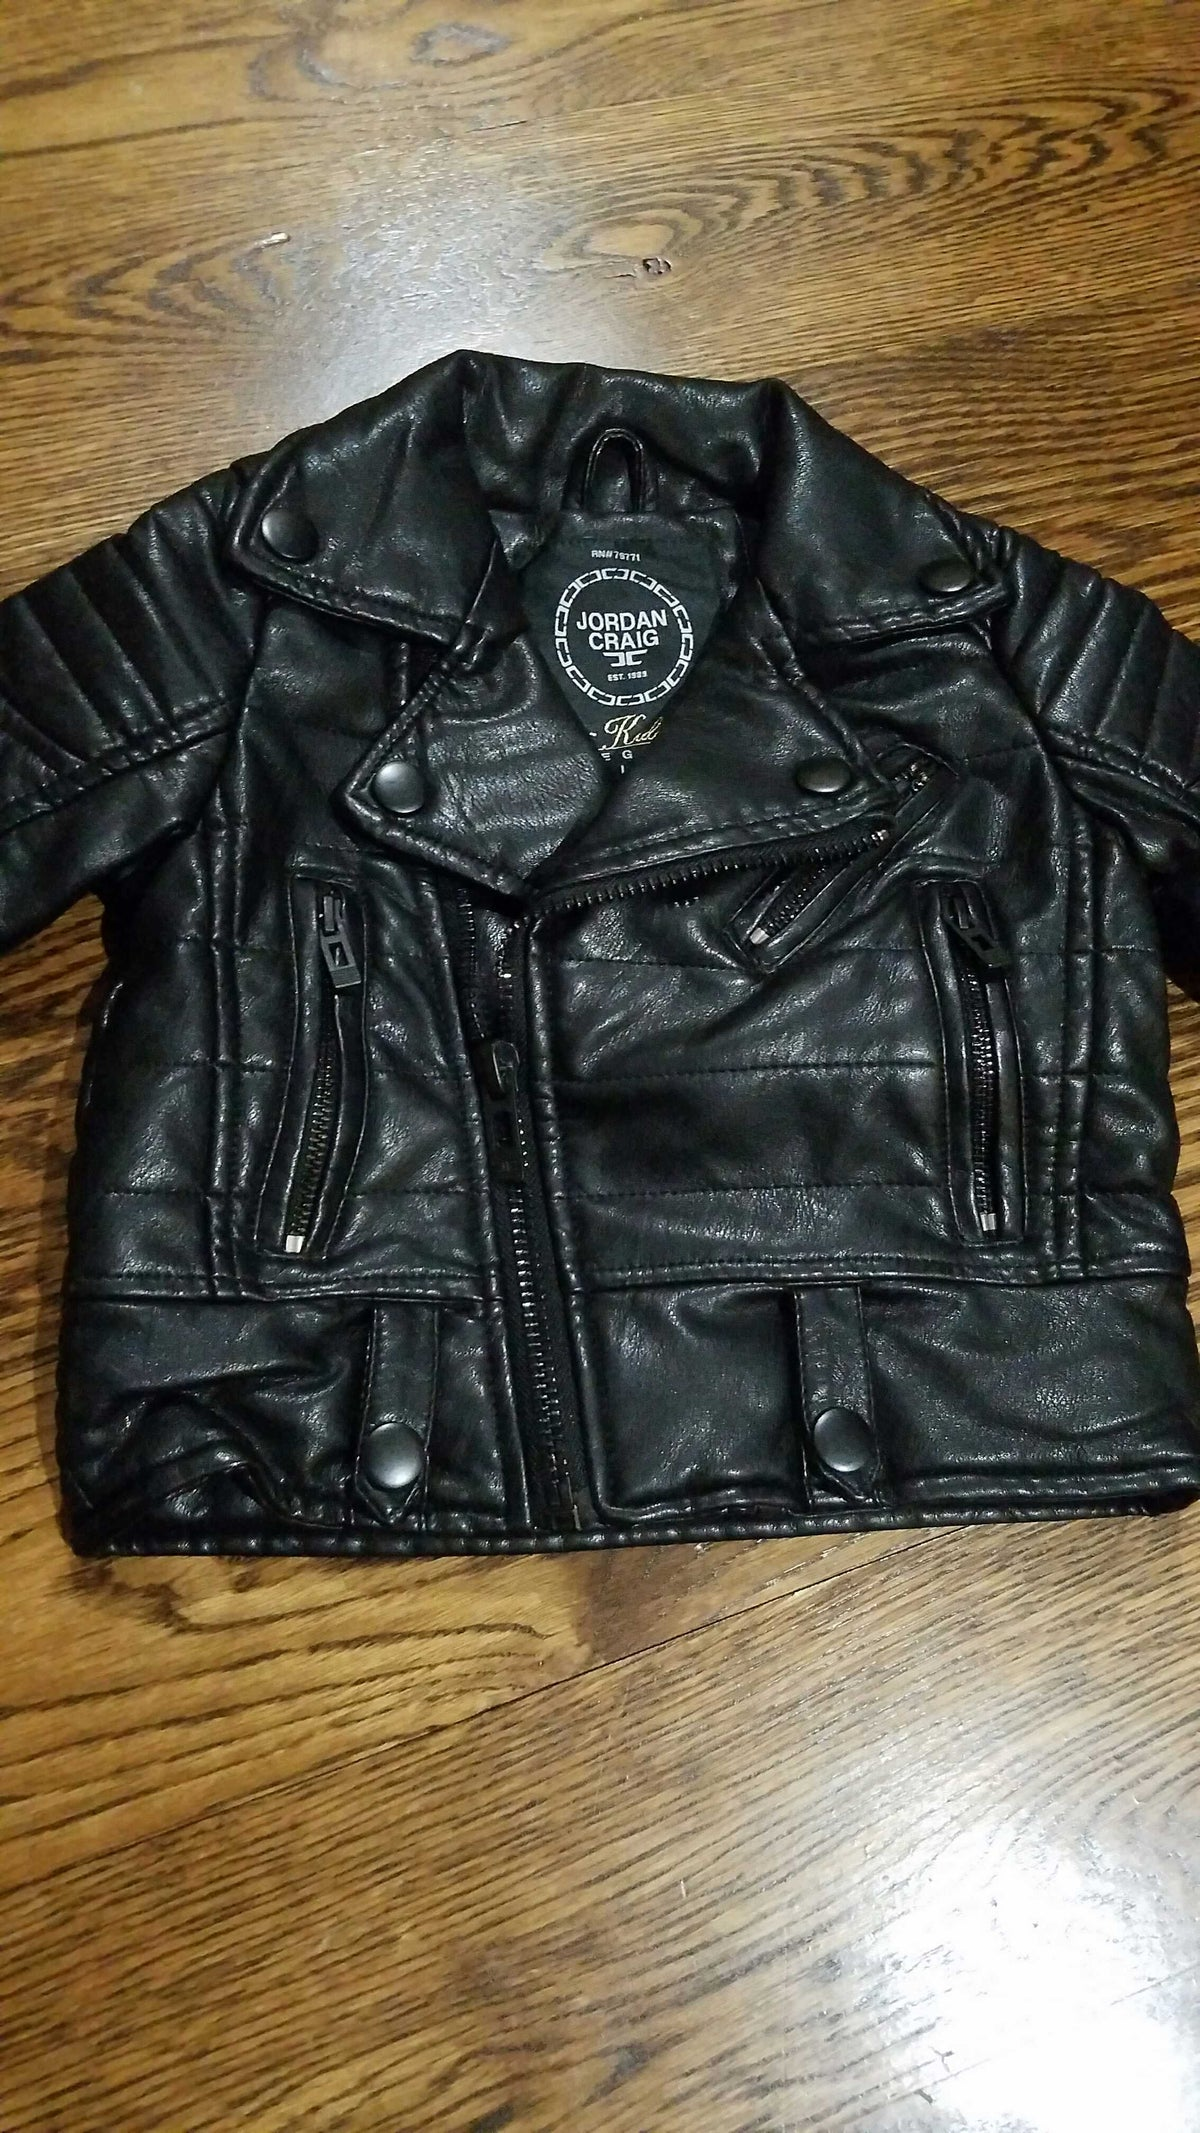 KIDS BIKER JACKET 91243AK BLACK - cosign1975